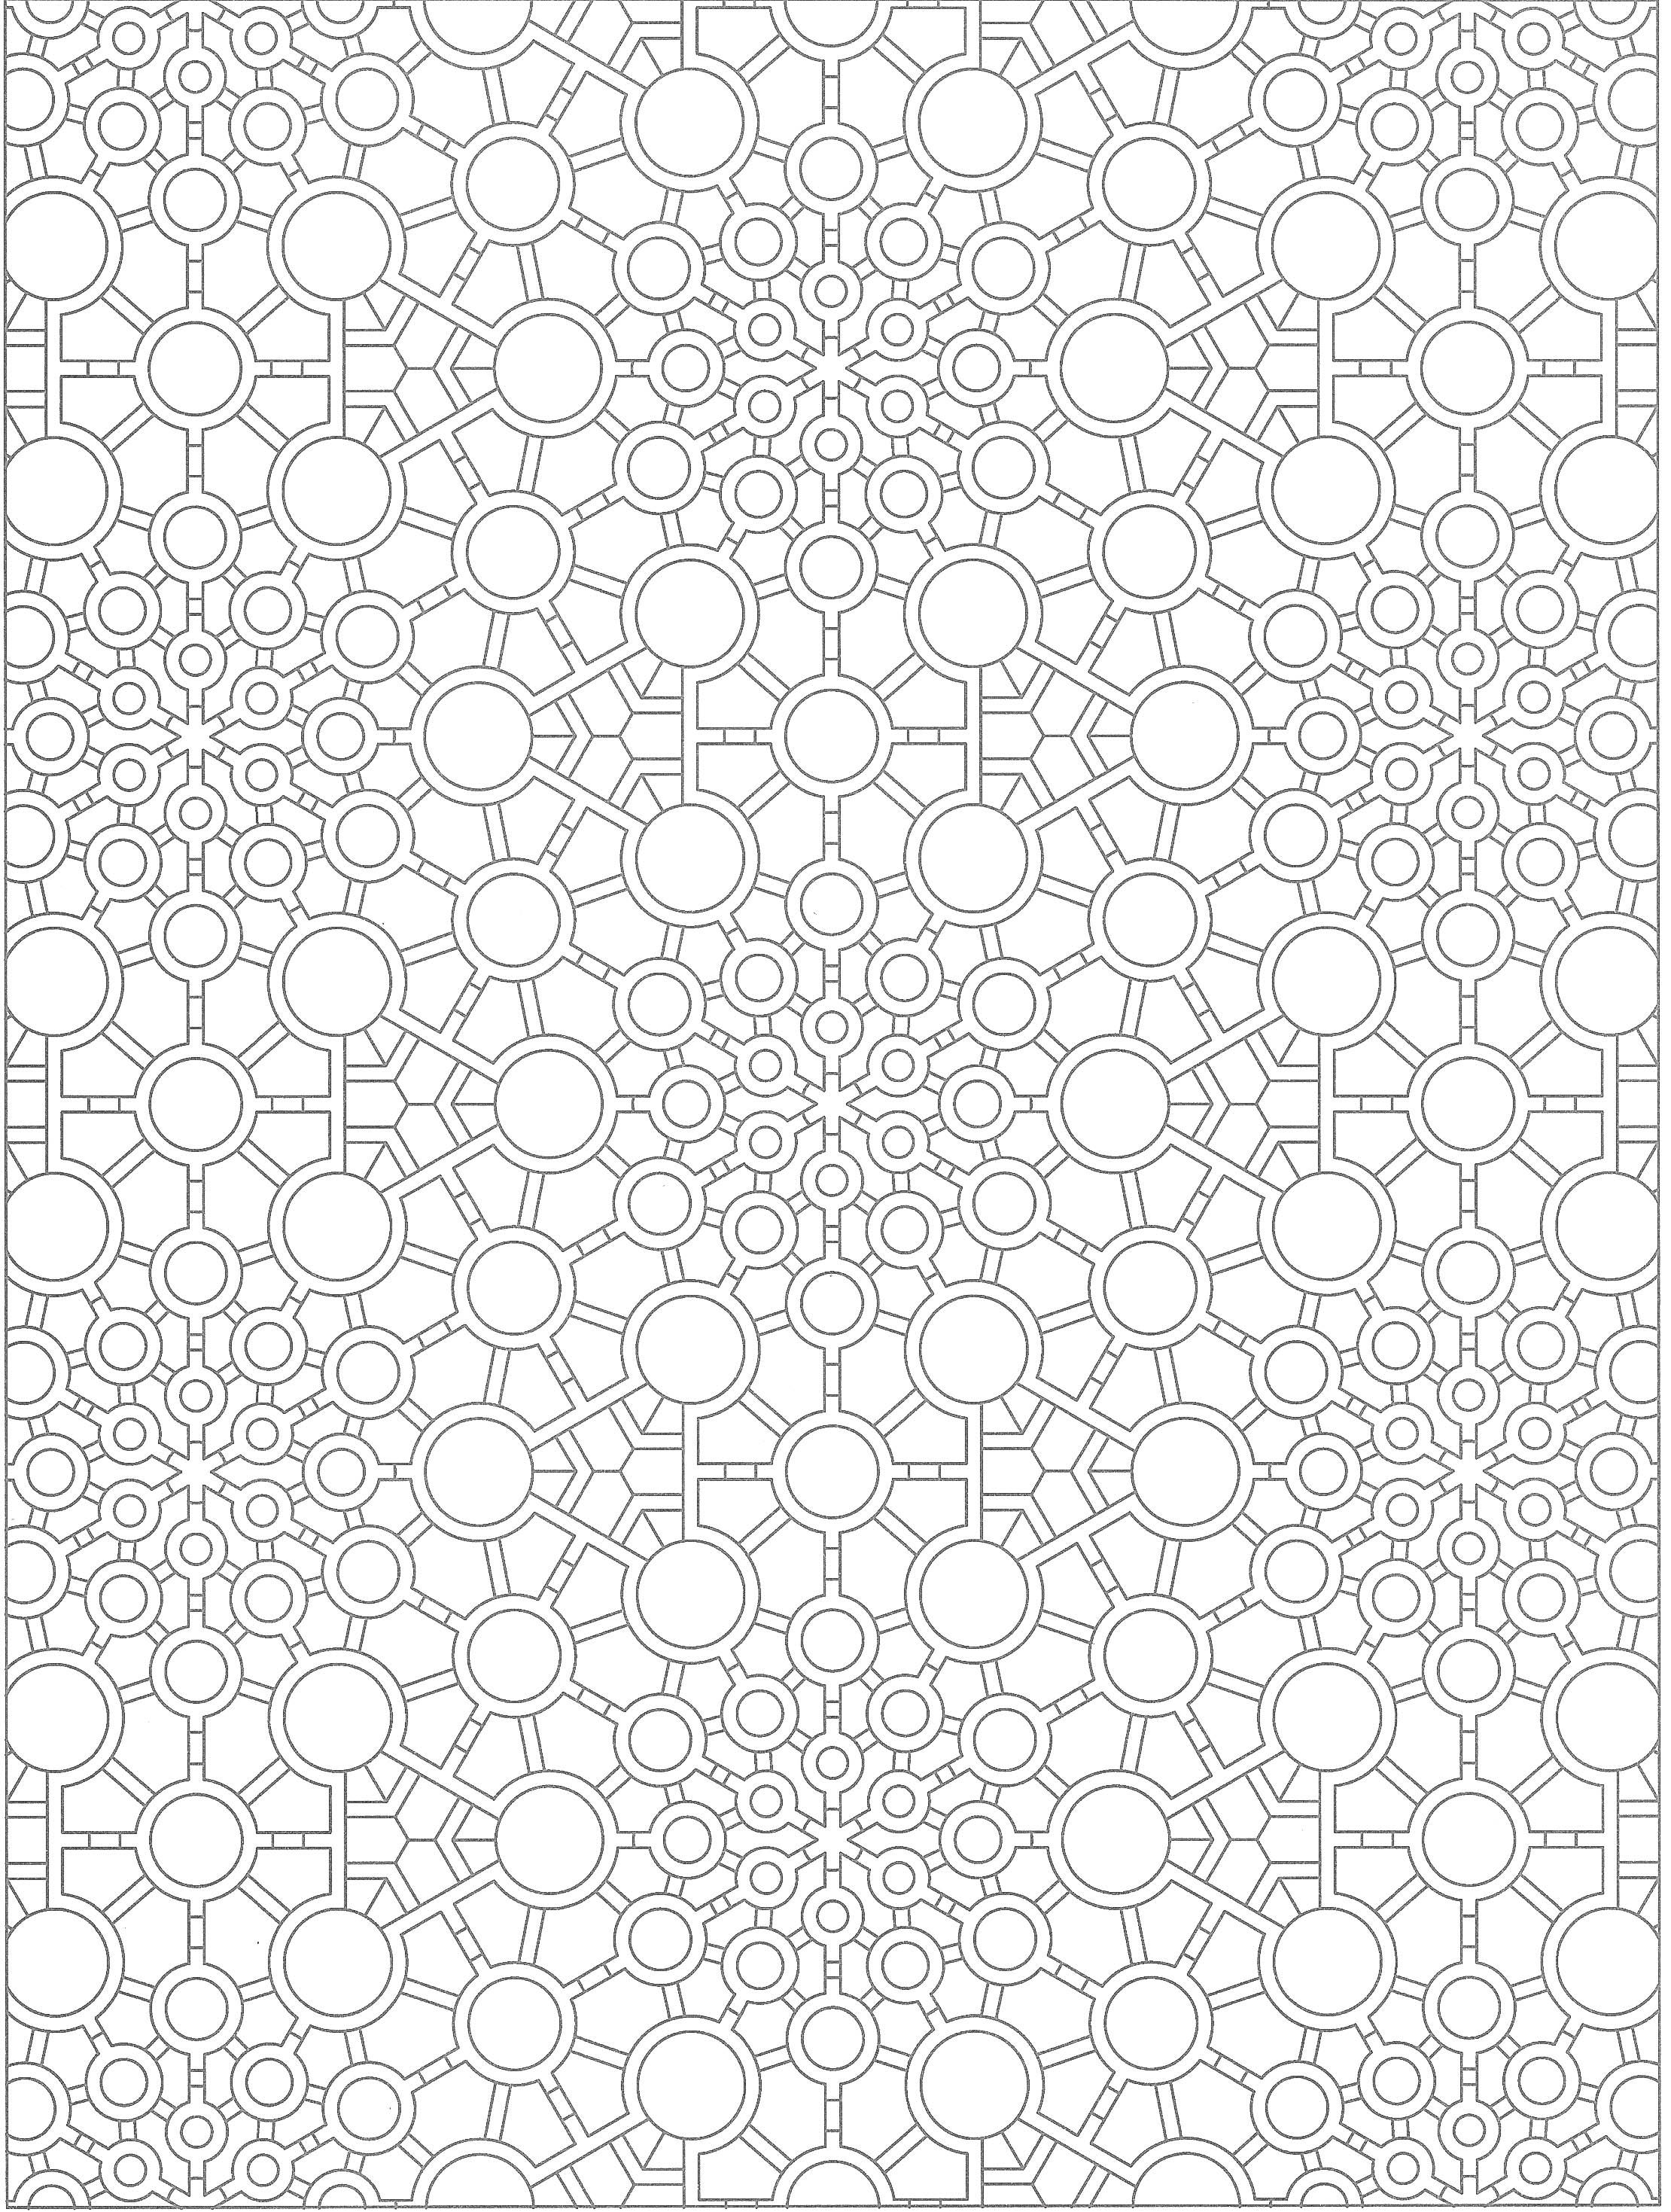 printable tessellation patterns to color creative haven tessellations coloring page with images patterns printable color to tessellation